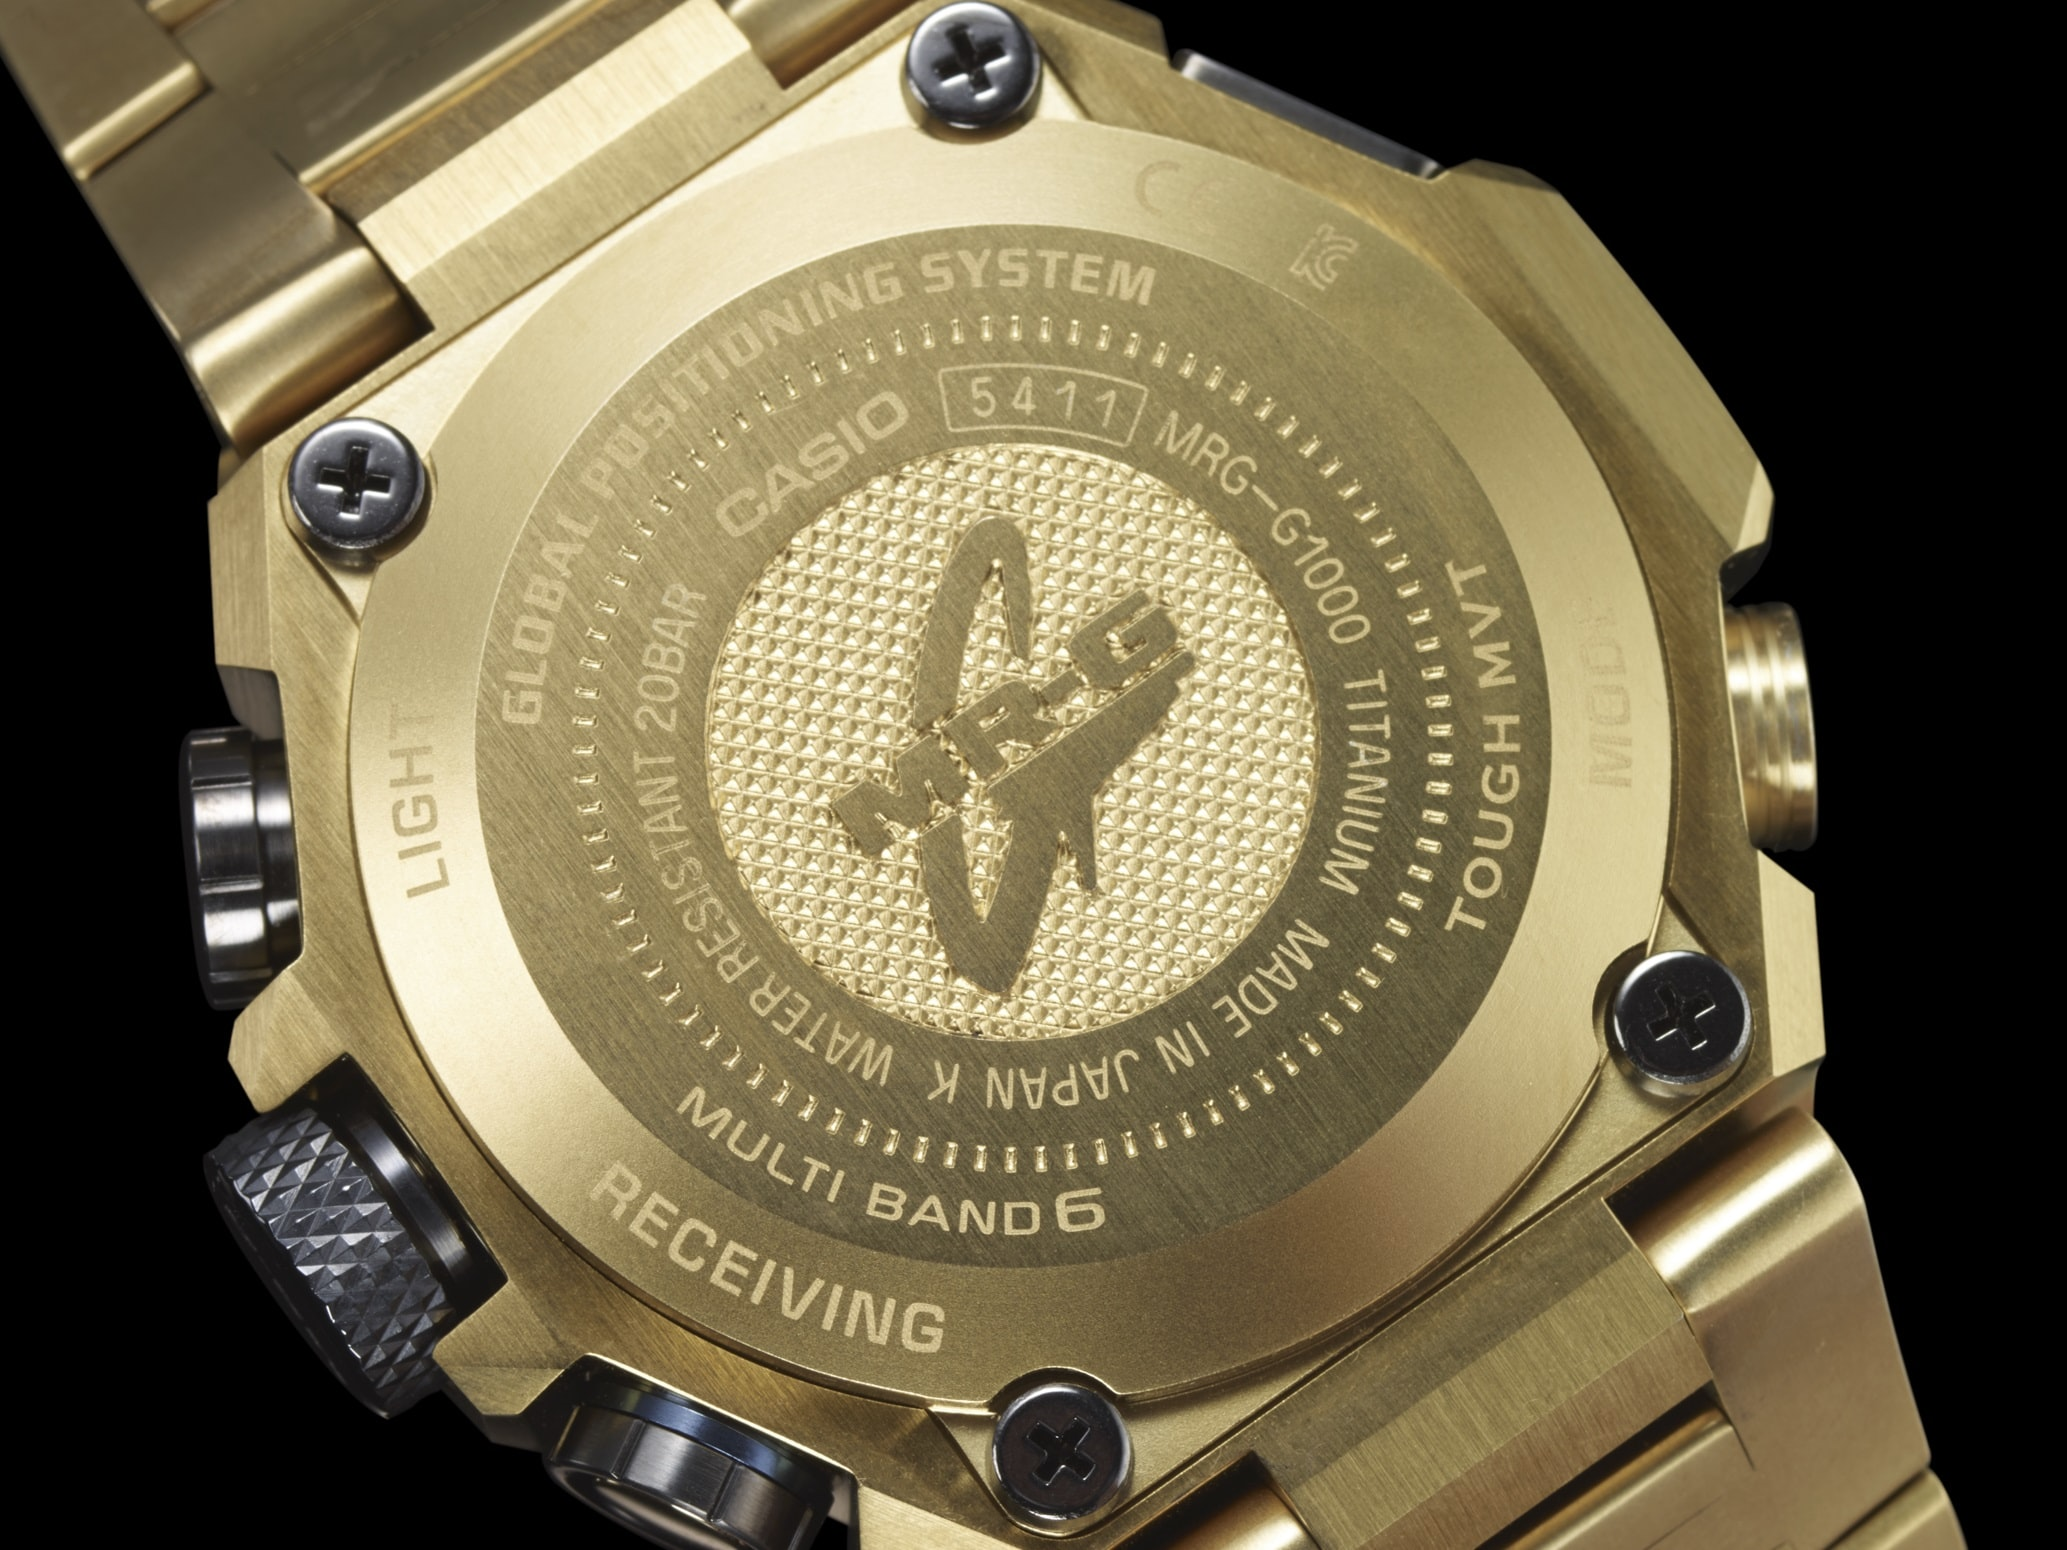 MRG-G10000HG-9A caseback Introducing: The Casio G-Shock 'Hammer Tone' MRG-G10000HG-9A In Gold, Celebrating 20 Years Of MR-G Introducing: The Casio G-Shock 'Hammer Tone' MRG-G10000HG-9A In Gold, Celebrating 20 Years Of MR-G MRG G1000HG 9A theme 7